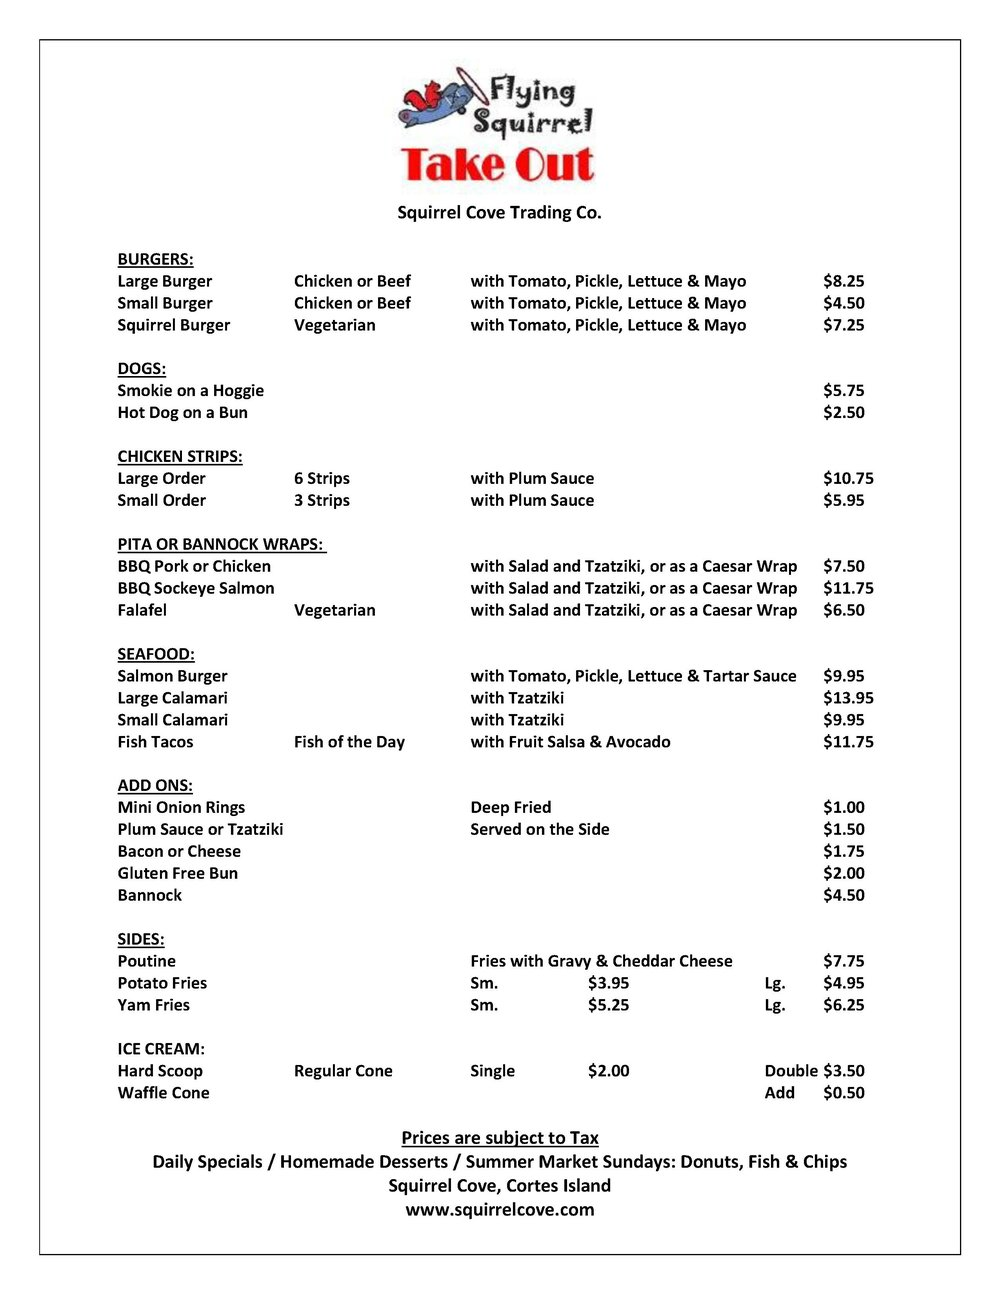 Flying Squirrel Menu.jpg